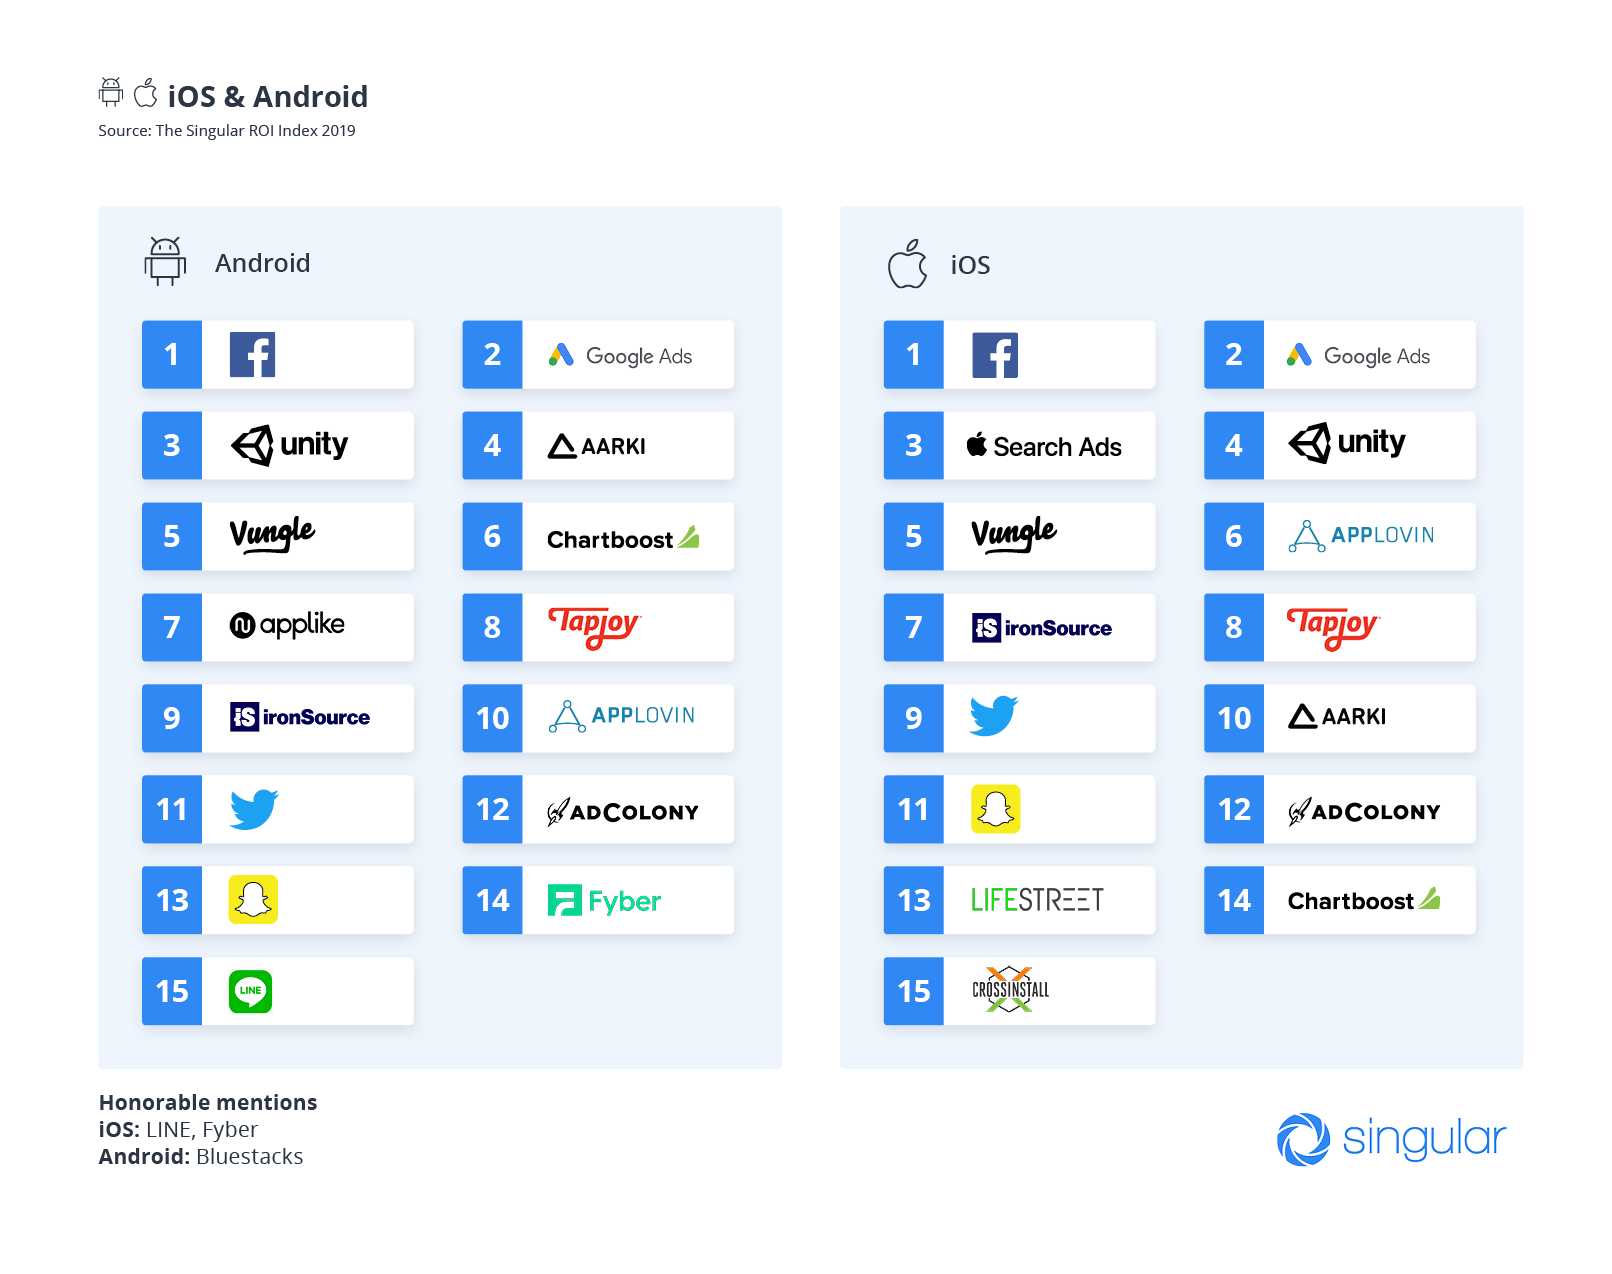 According to Singular study, Facebook and Google still offer the best value for mobile advertisers